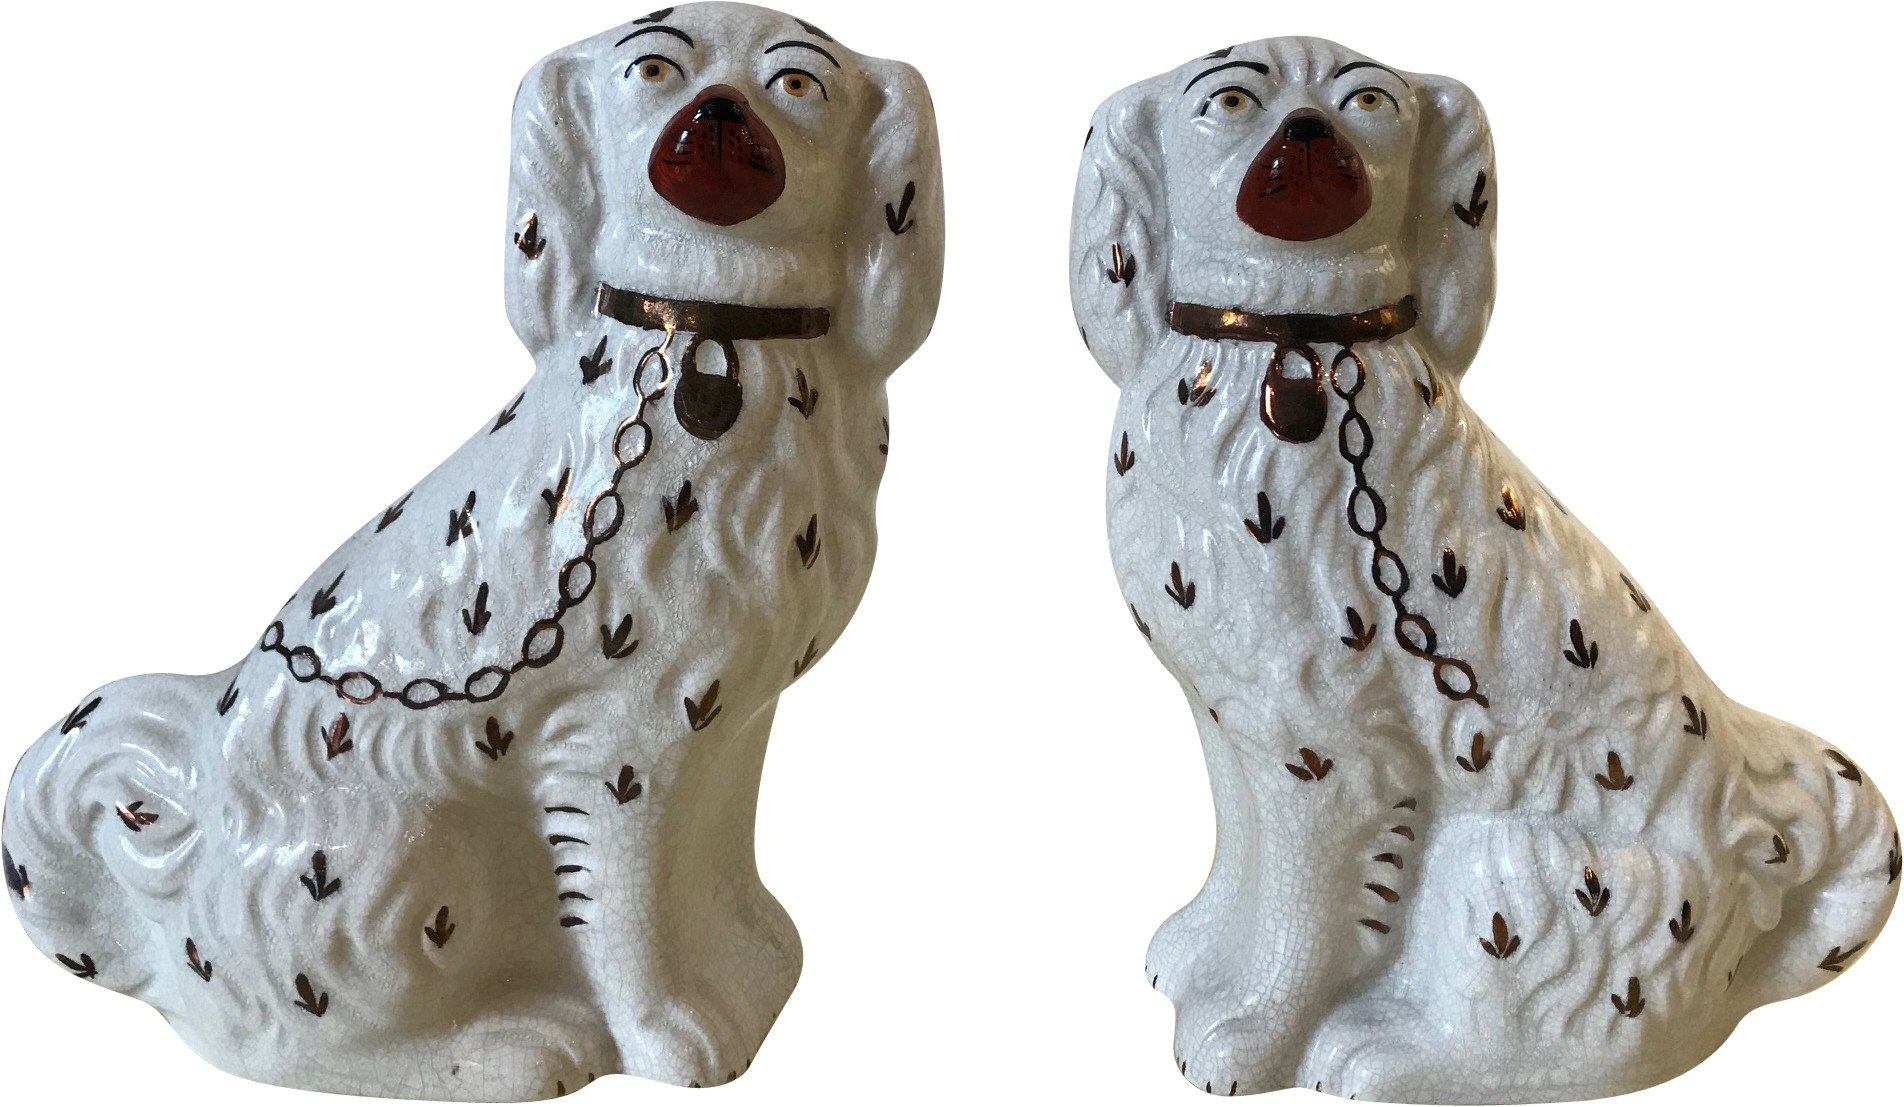 Pair of Spaniels Dog Figurines, 1950s